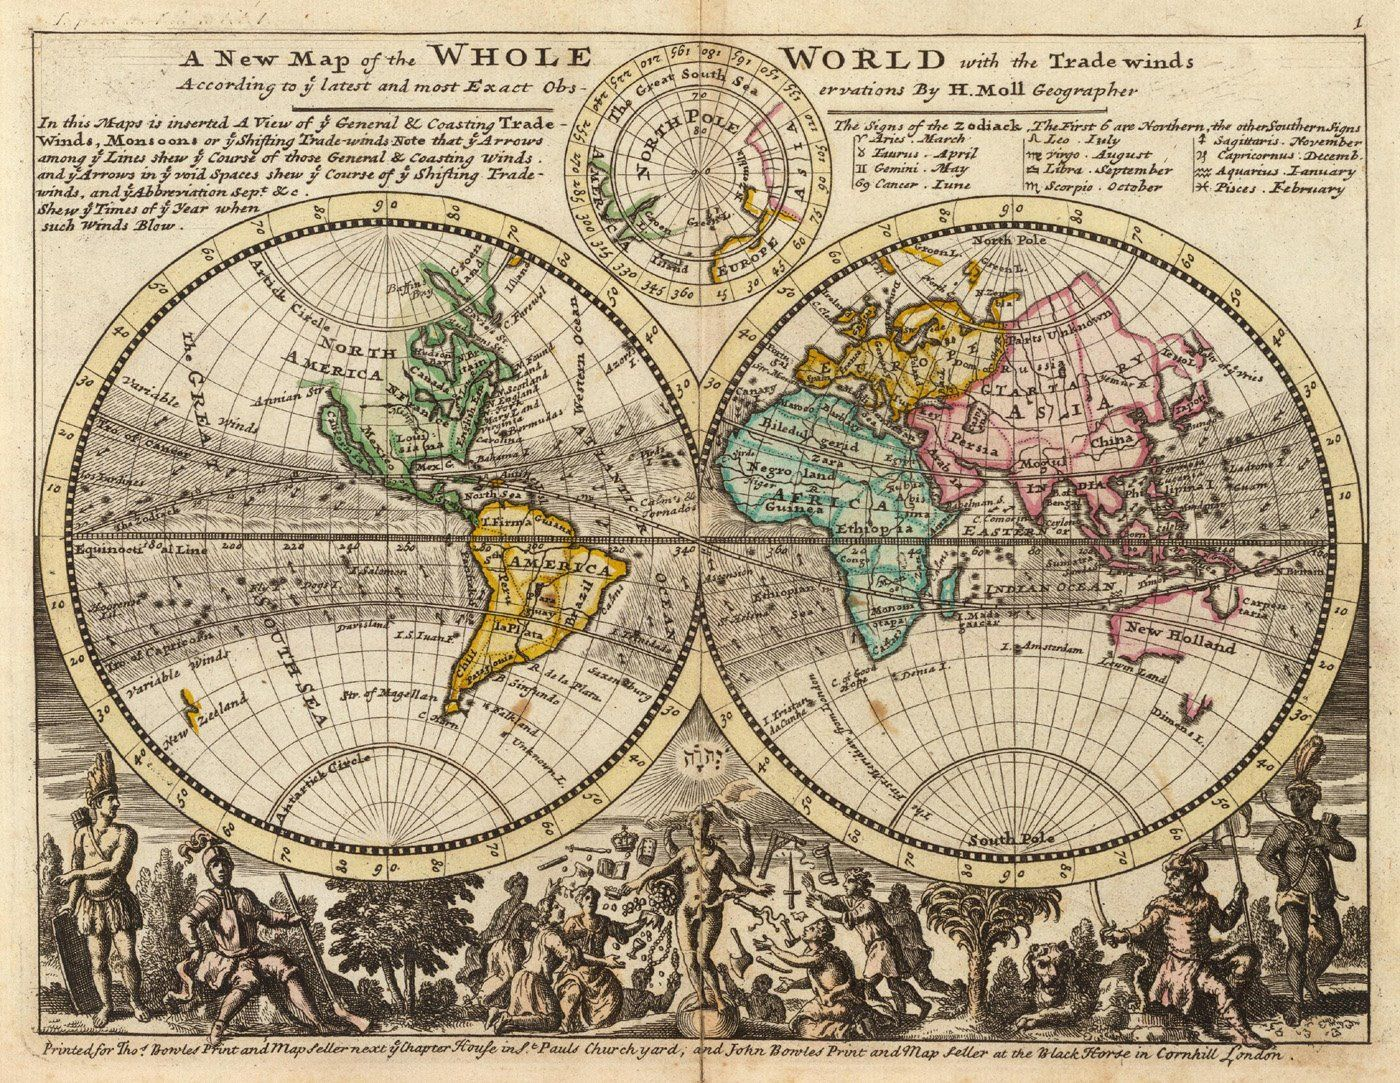 18th Century World Map With The Trade Winds From The German Or Dutch